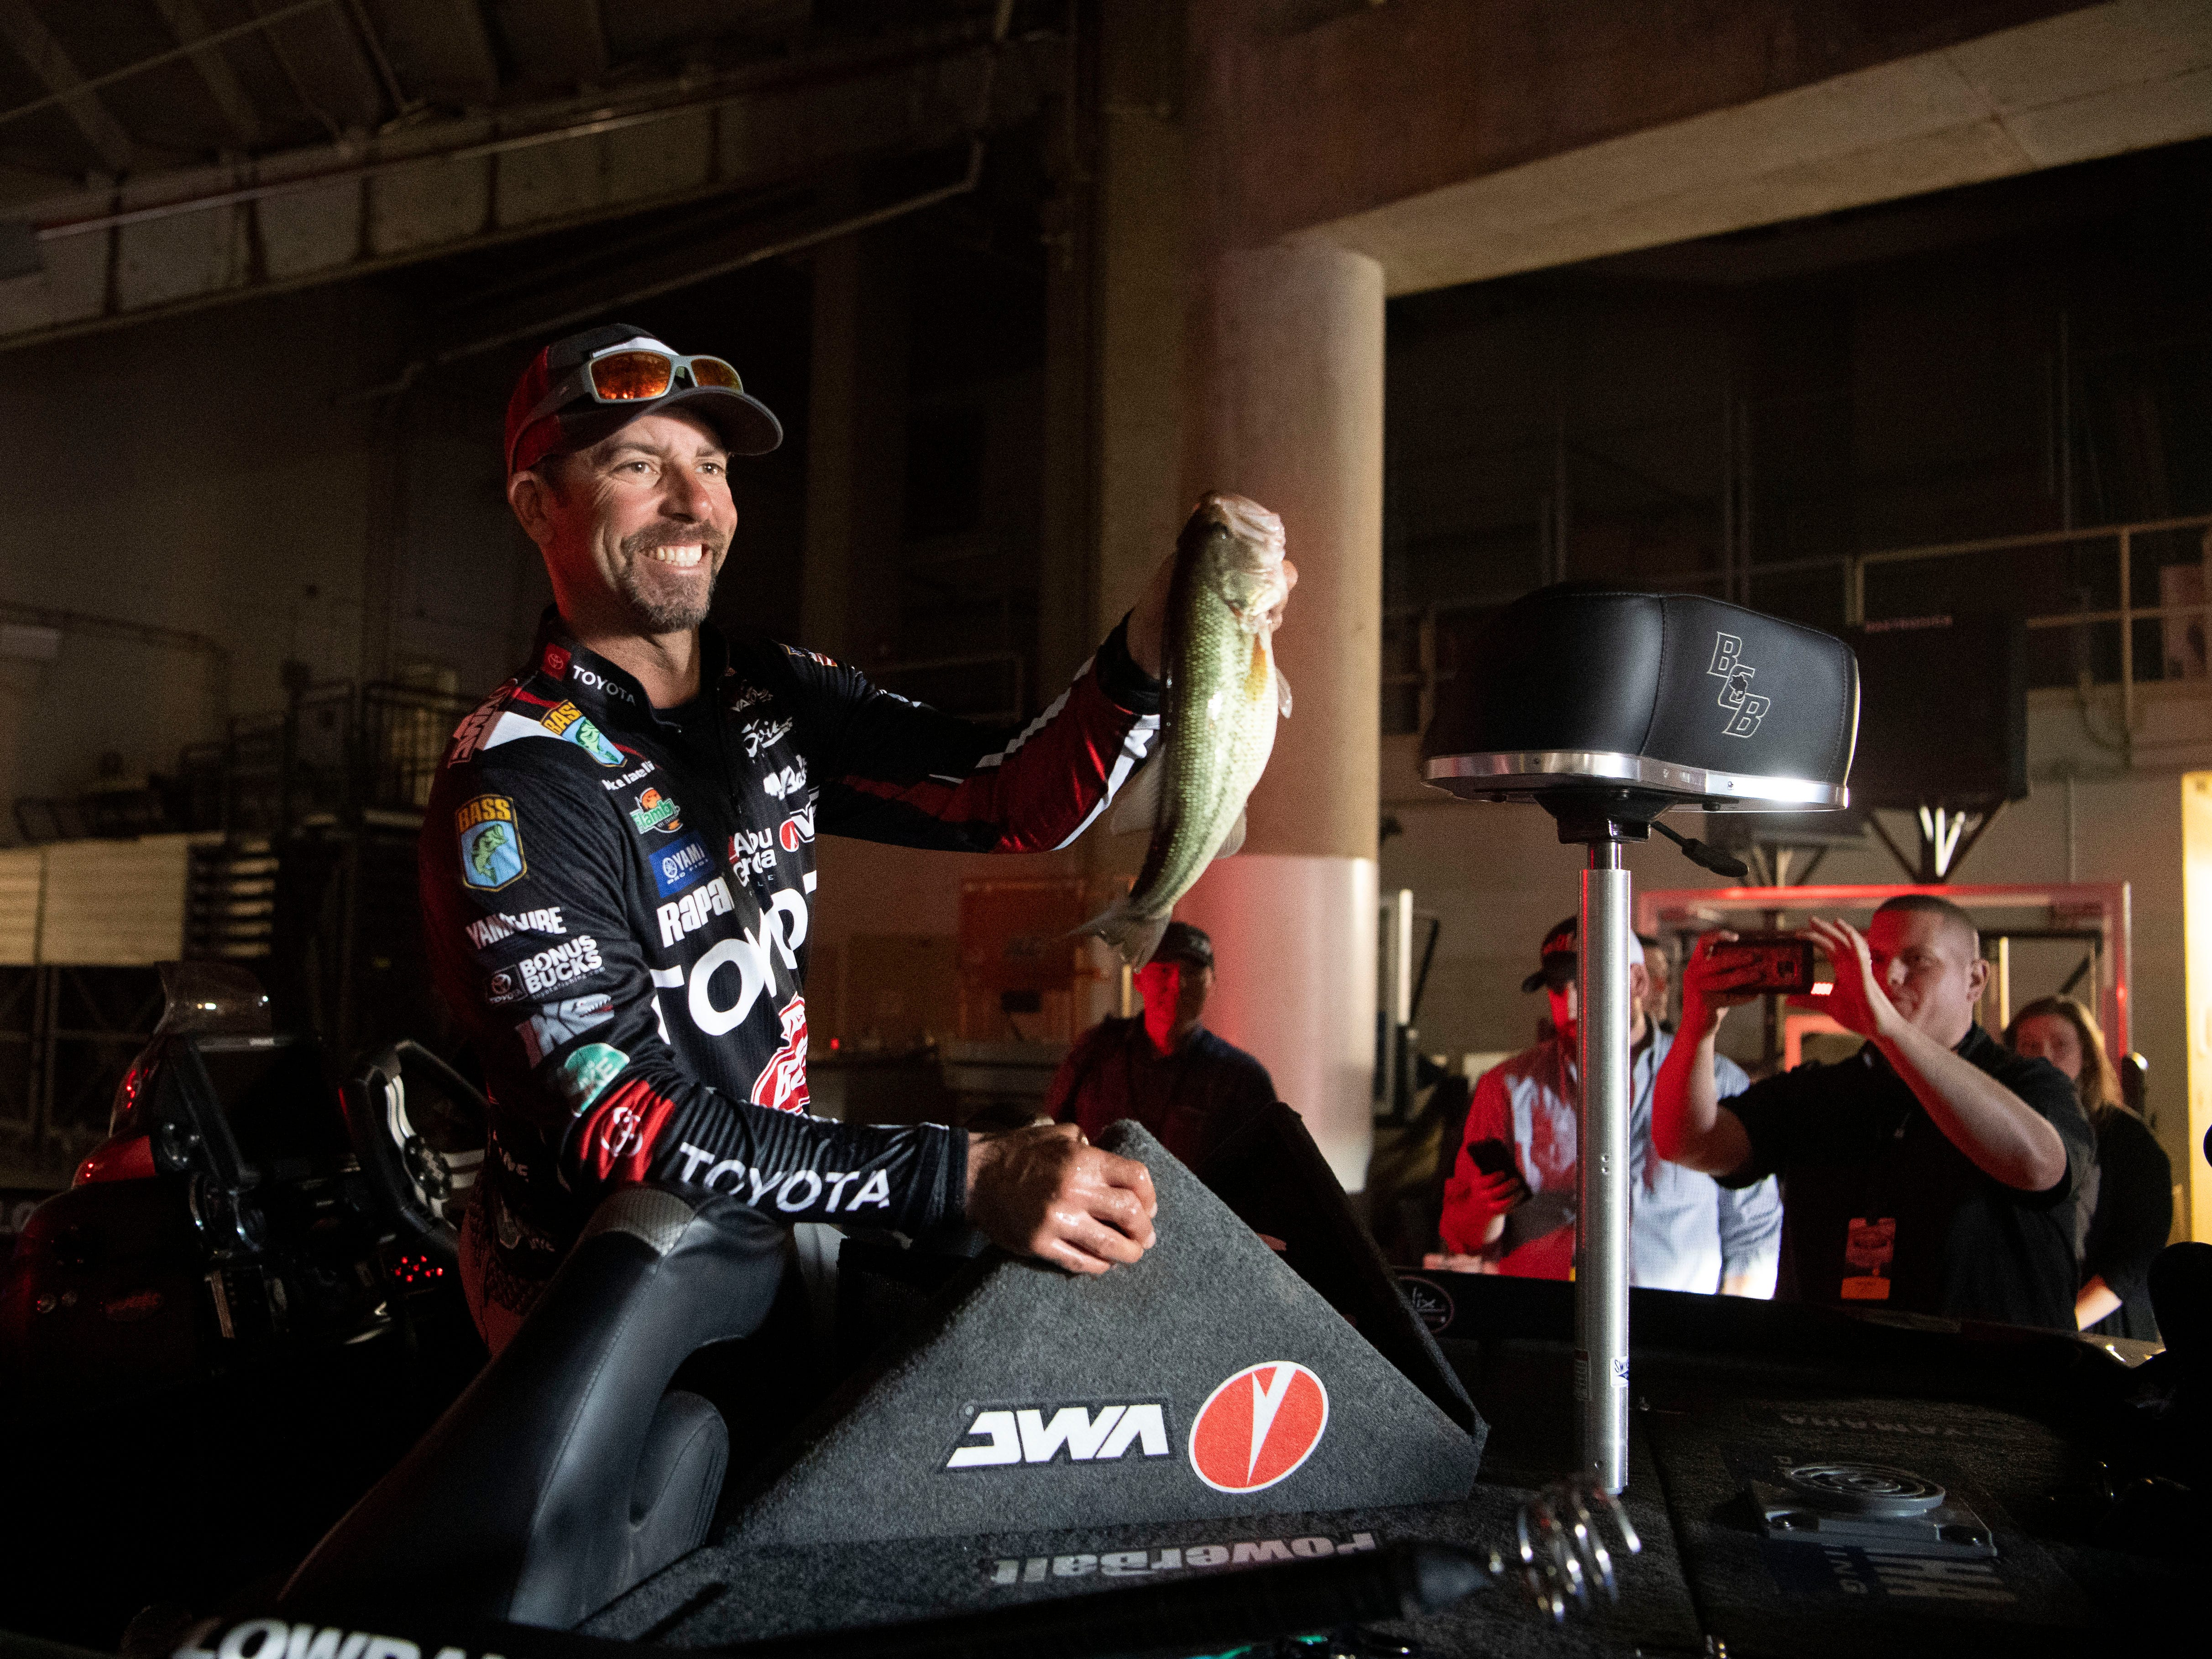 Professional bass fisherman Mike Iaconelli shows one of his catches, a largemouth bass, before weigh-in on the first day of the GEICO Bassmaster Classic presented by DICKÕS Sporting Goods at Thompson-Boling Arena on Friday, March 15, 2019.